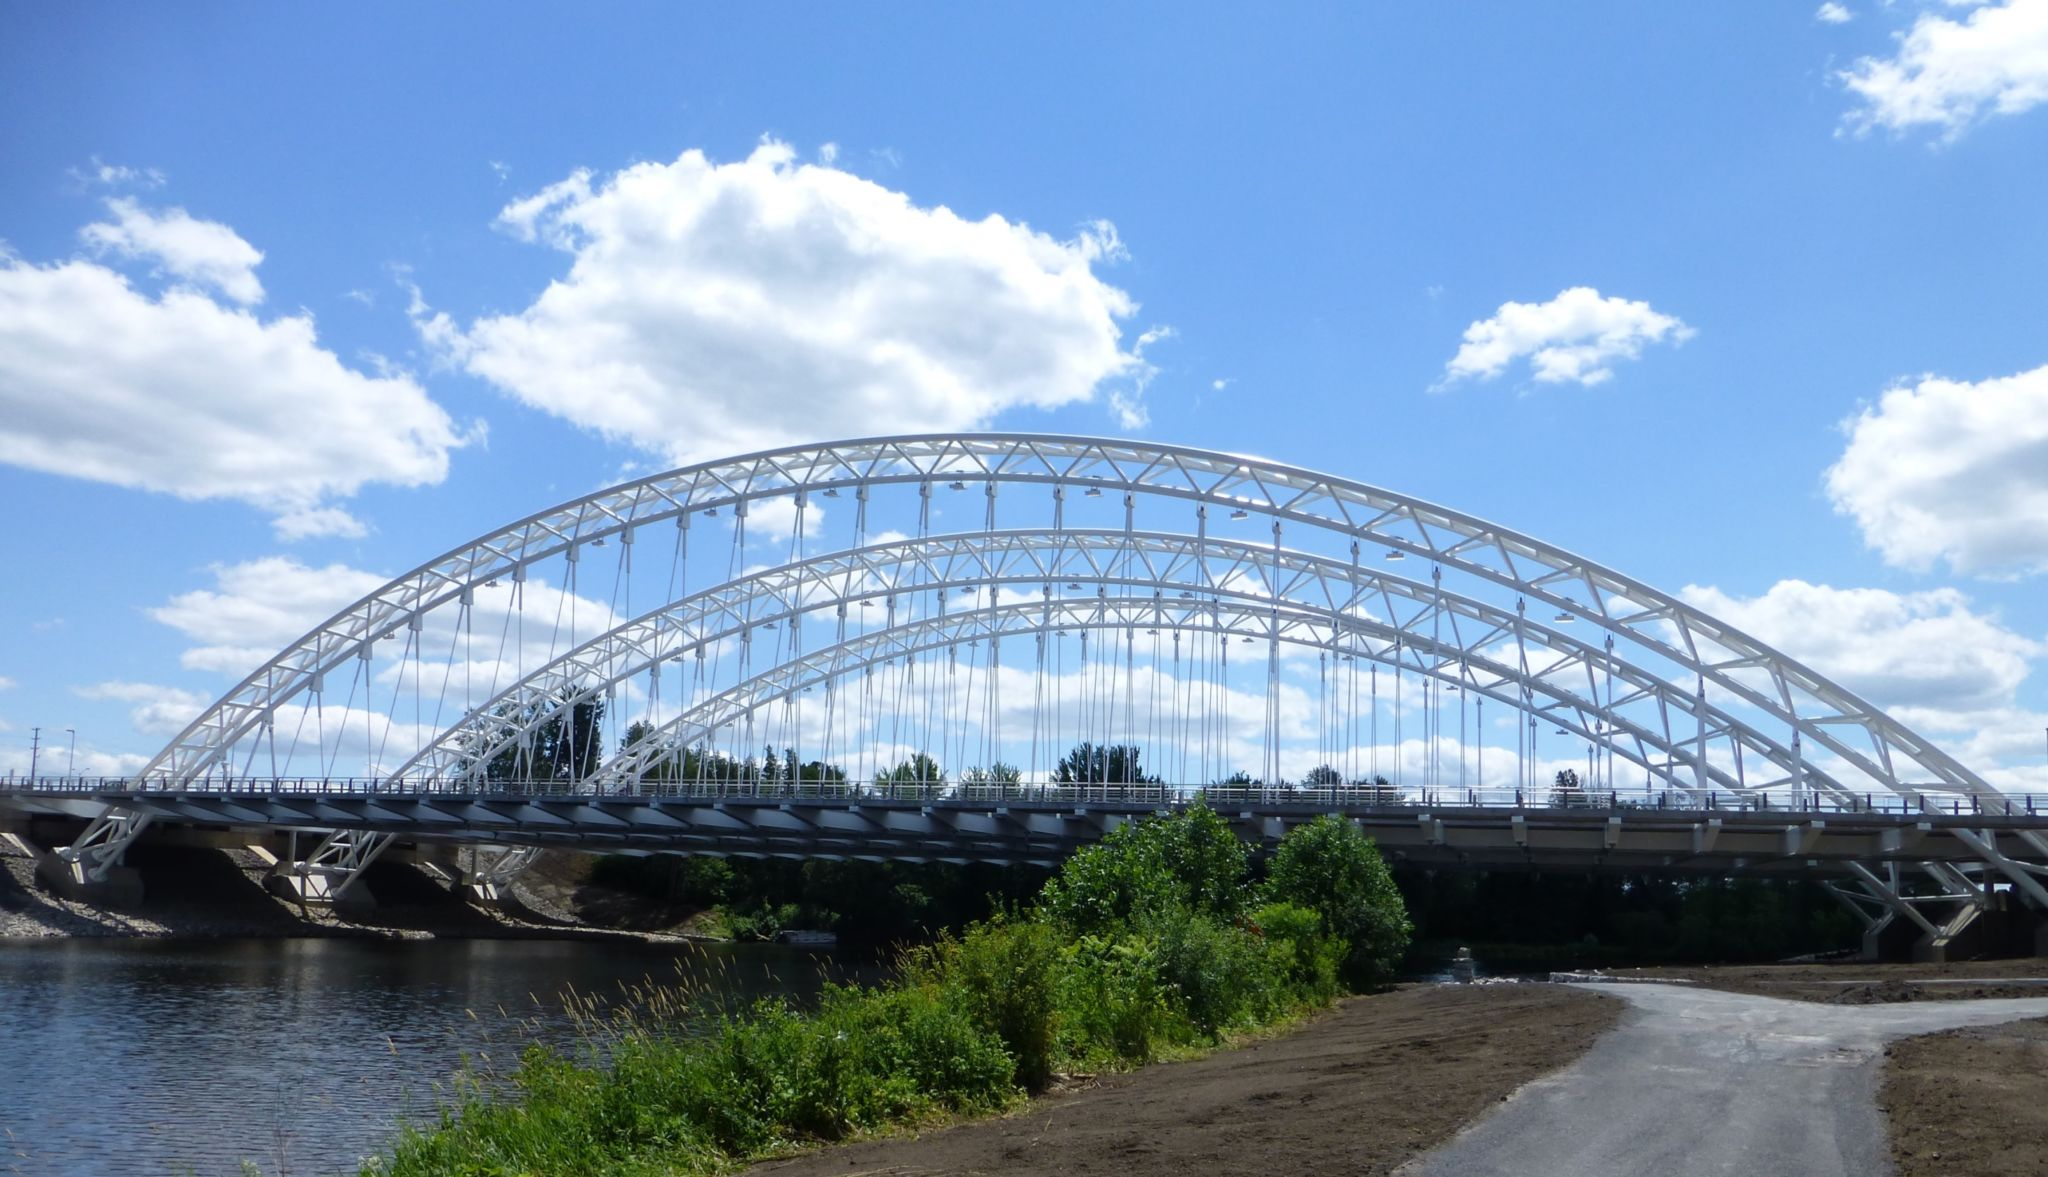 The Strandherd-Armstrong Bridge in Ottawa, Ont. used steel's lightweight and flexible properties to its advantage and won the bridges category.